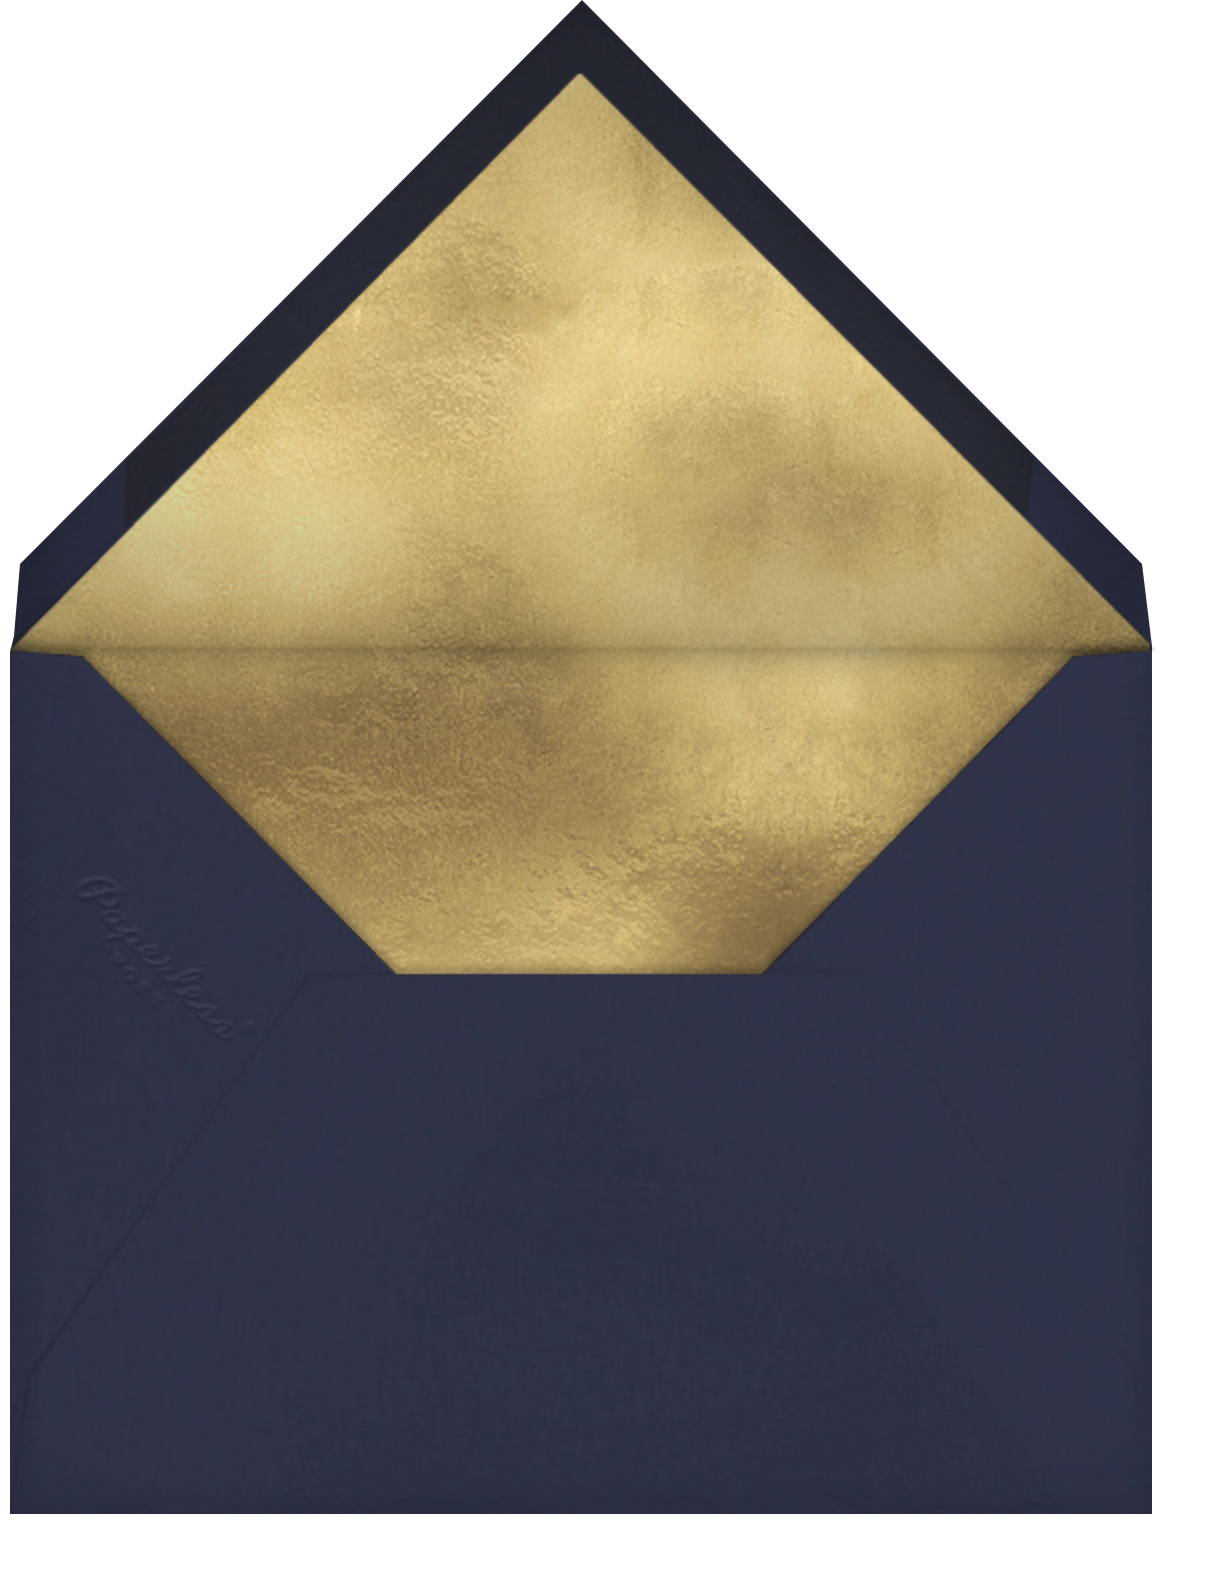 Featured Thanks (Photo) - Coral - Paperless Post - Envelope